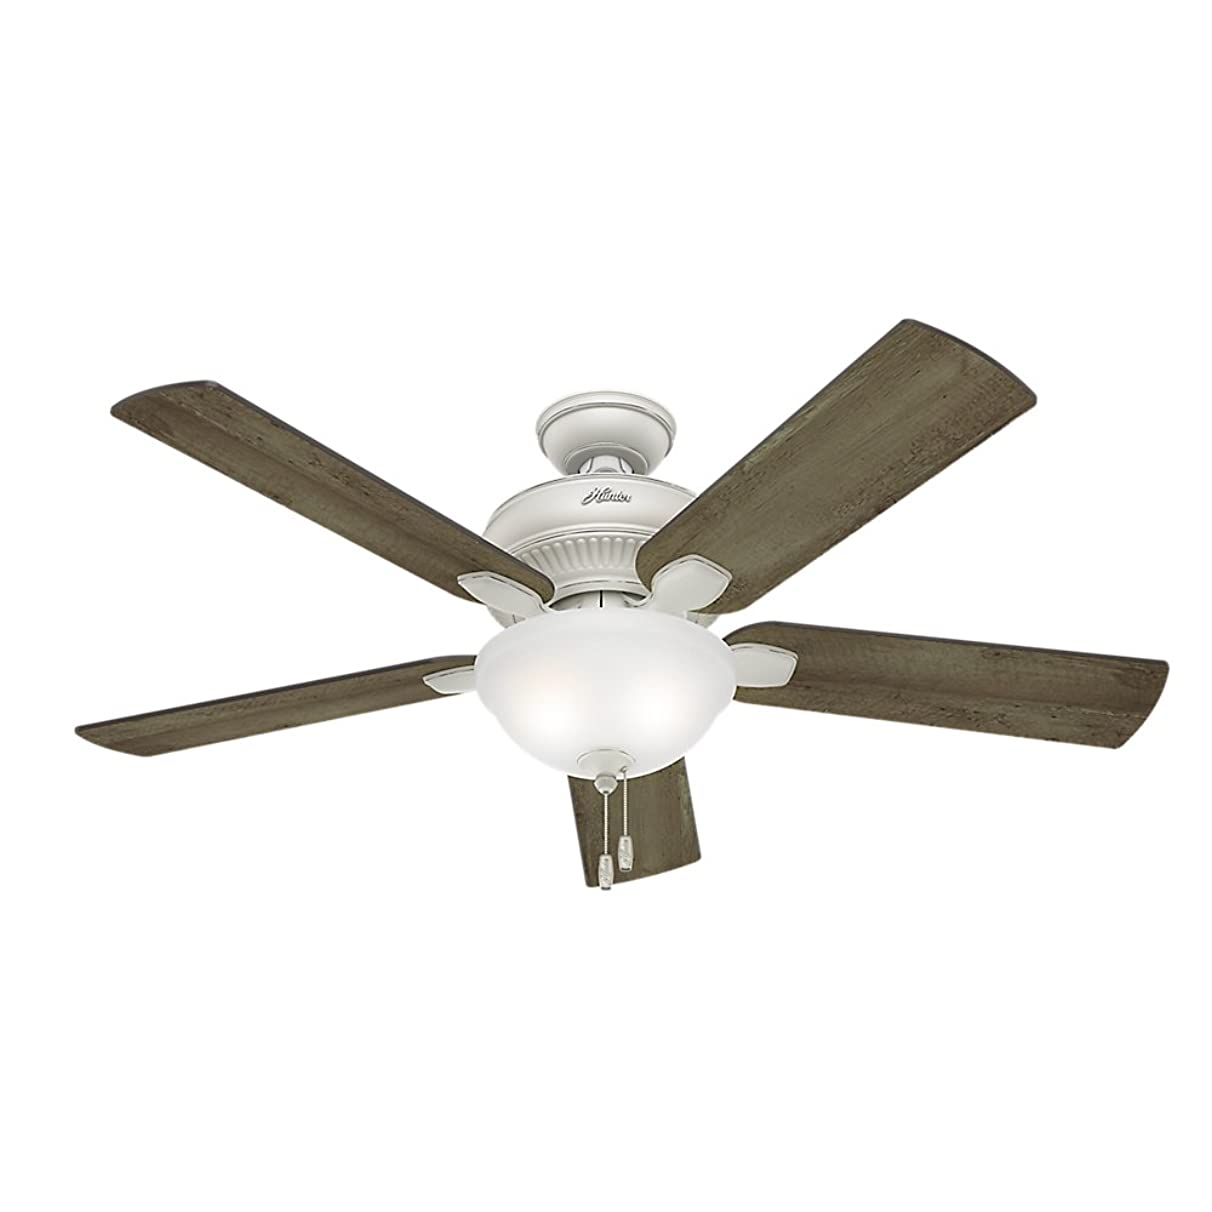 Hunter 54091 Matheston 52-Inch Cottage White Ceiling Fan with Five Gray Pine Blades and a Light Kit